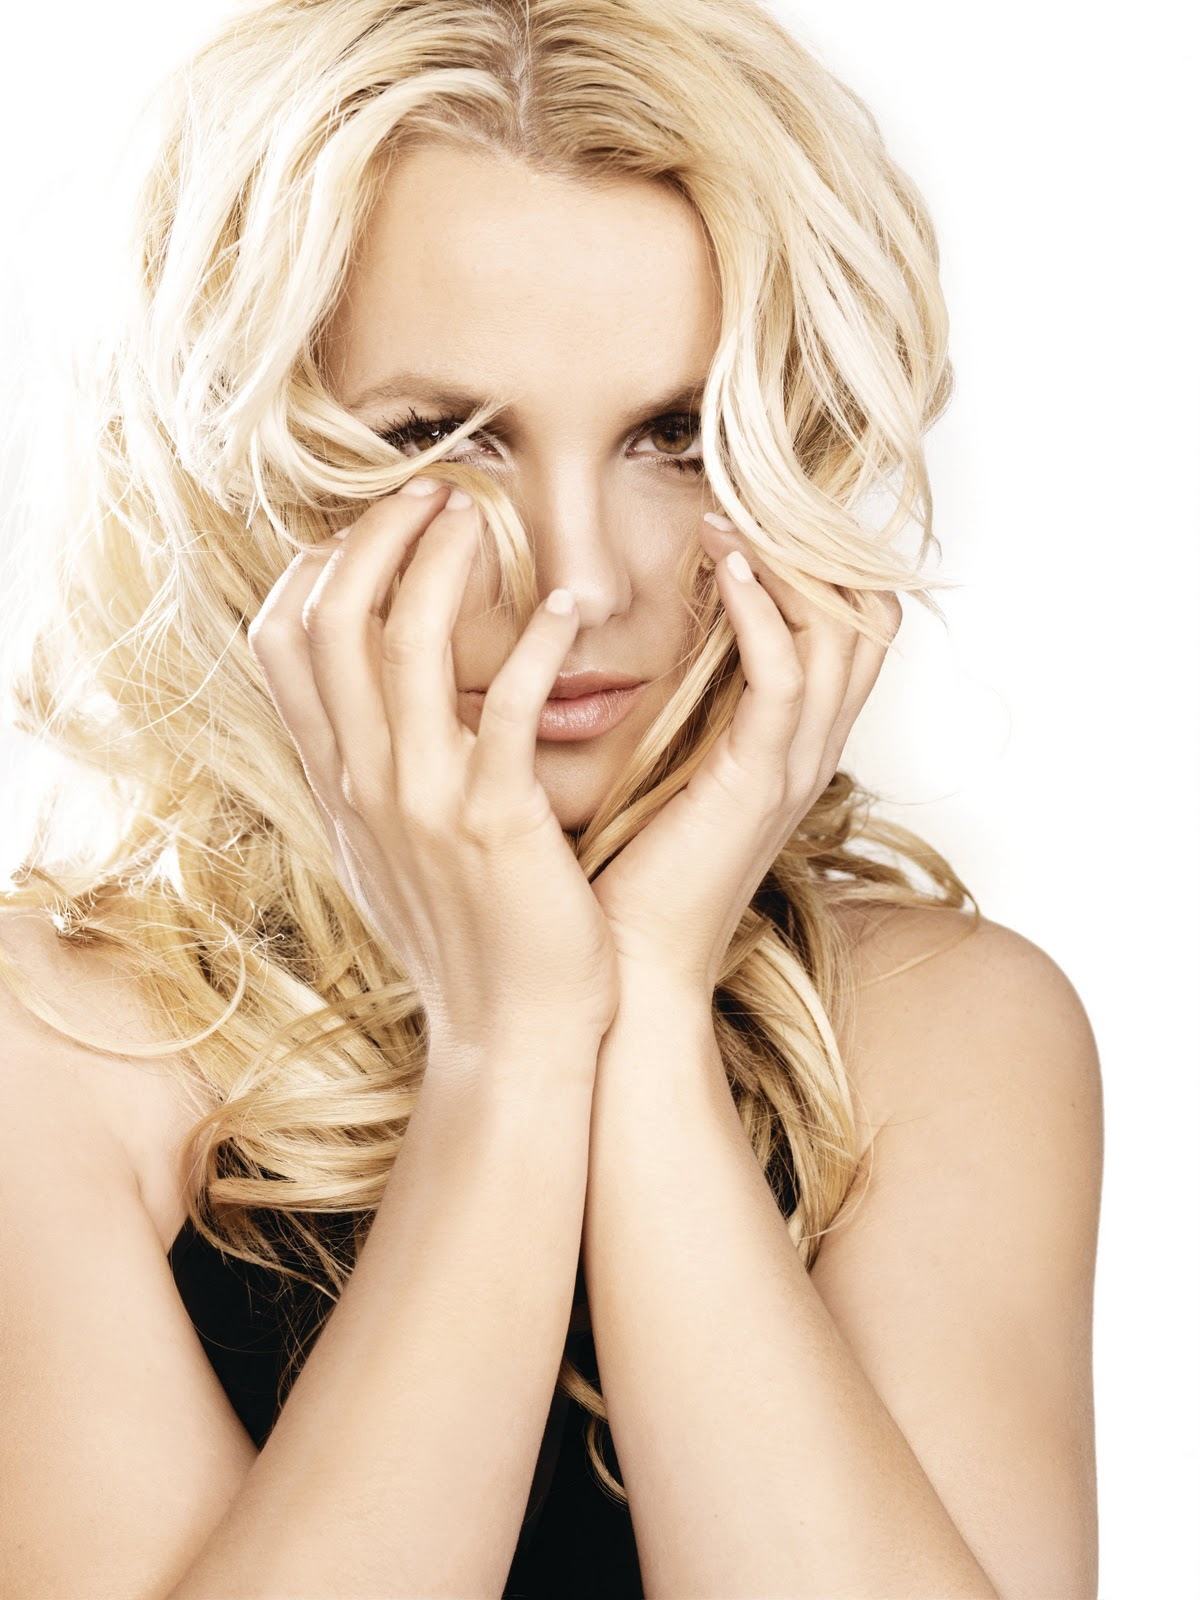 femme fatale Britney spears announces her seventh studio album is titled femme fatale the iconic global superstar's title femme fatale is a tribute to bold, empowered, confident, elusive, fun, flirty women and men.